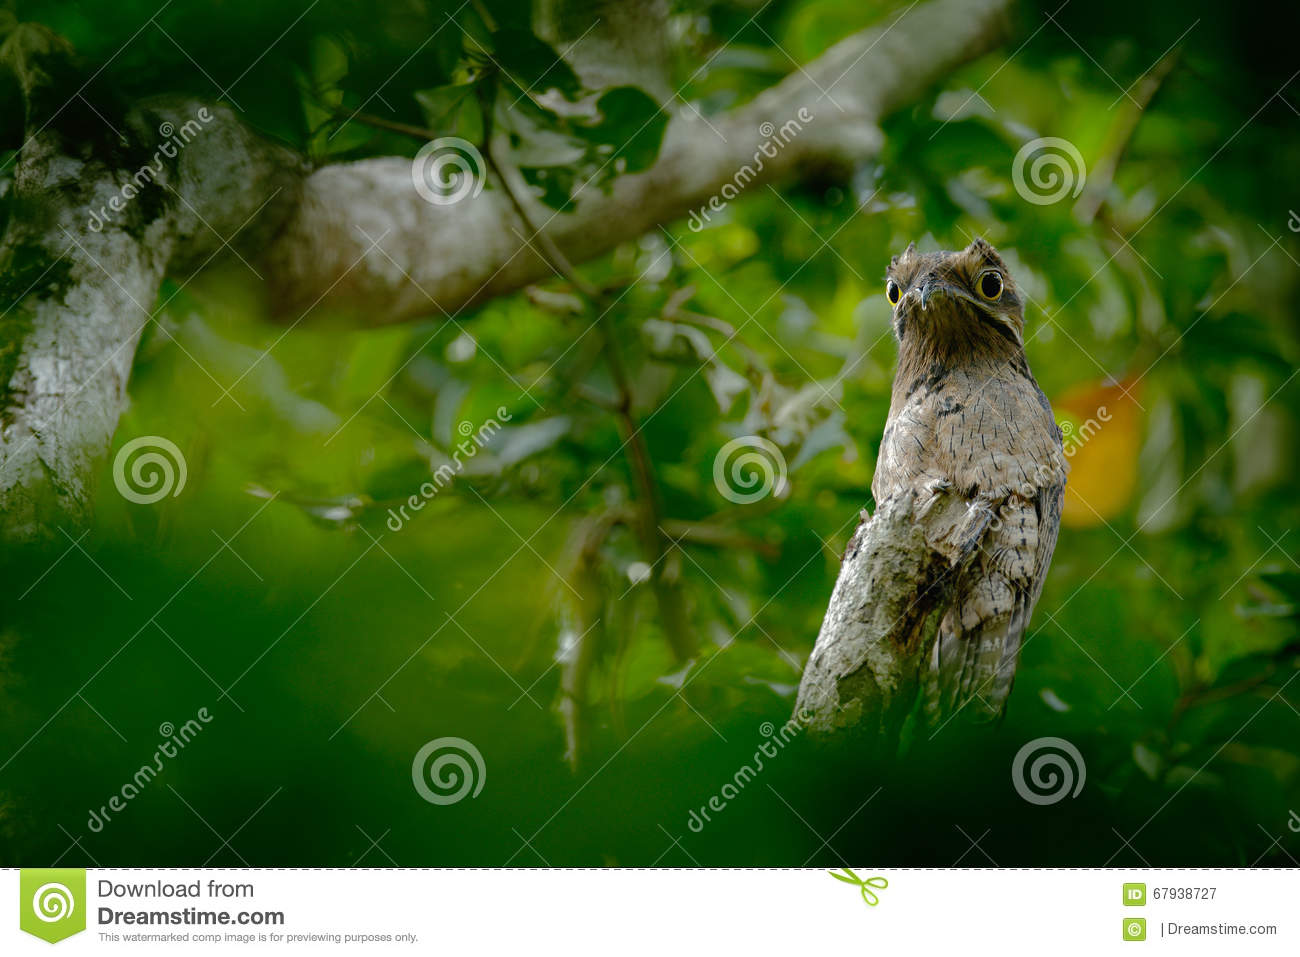 Common Potoo, Nyctibius griseus, on a perch, taken at Asa Wright Nature Centre, Trinidad, West Indies